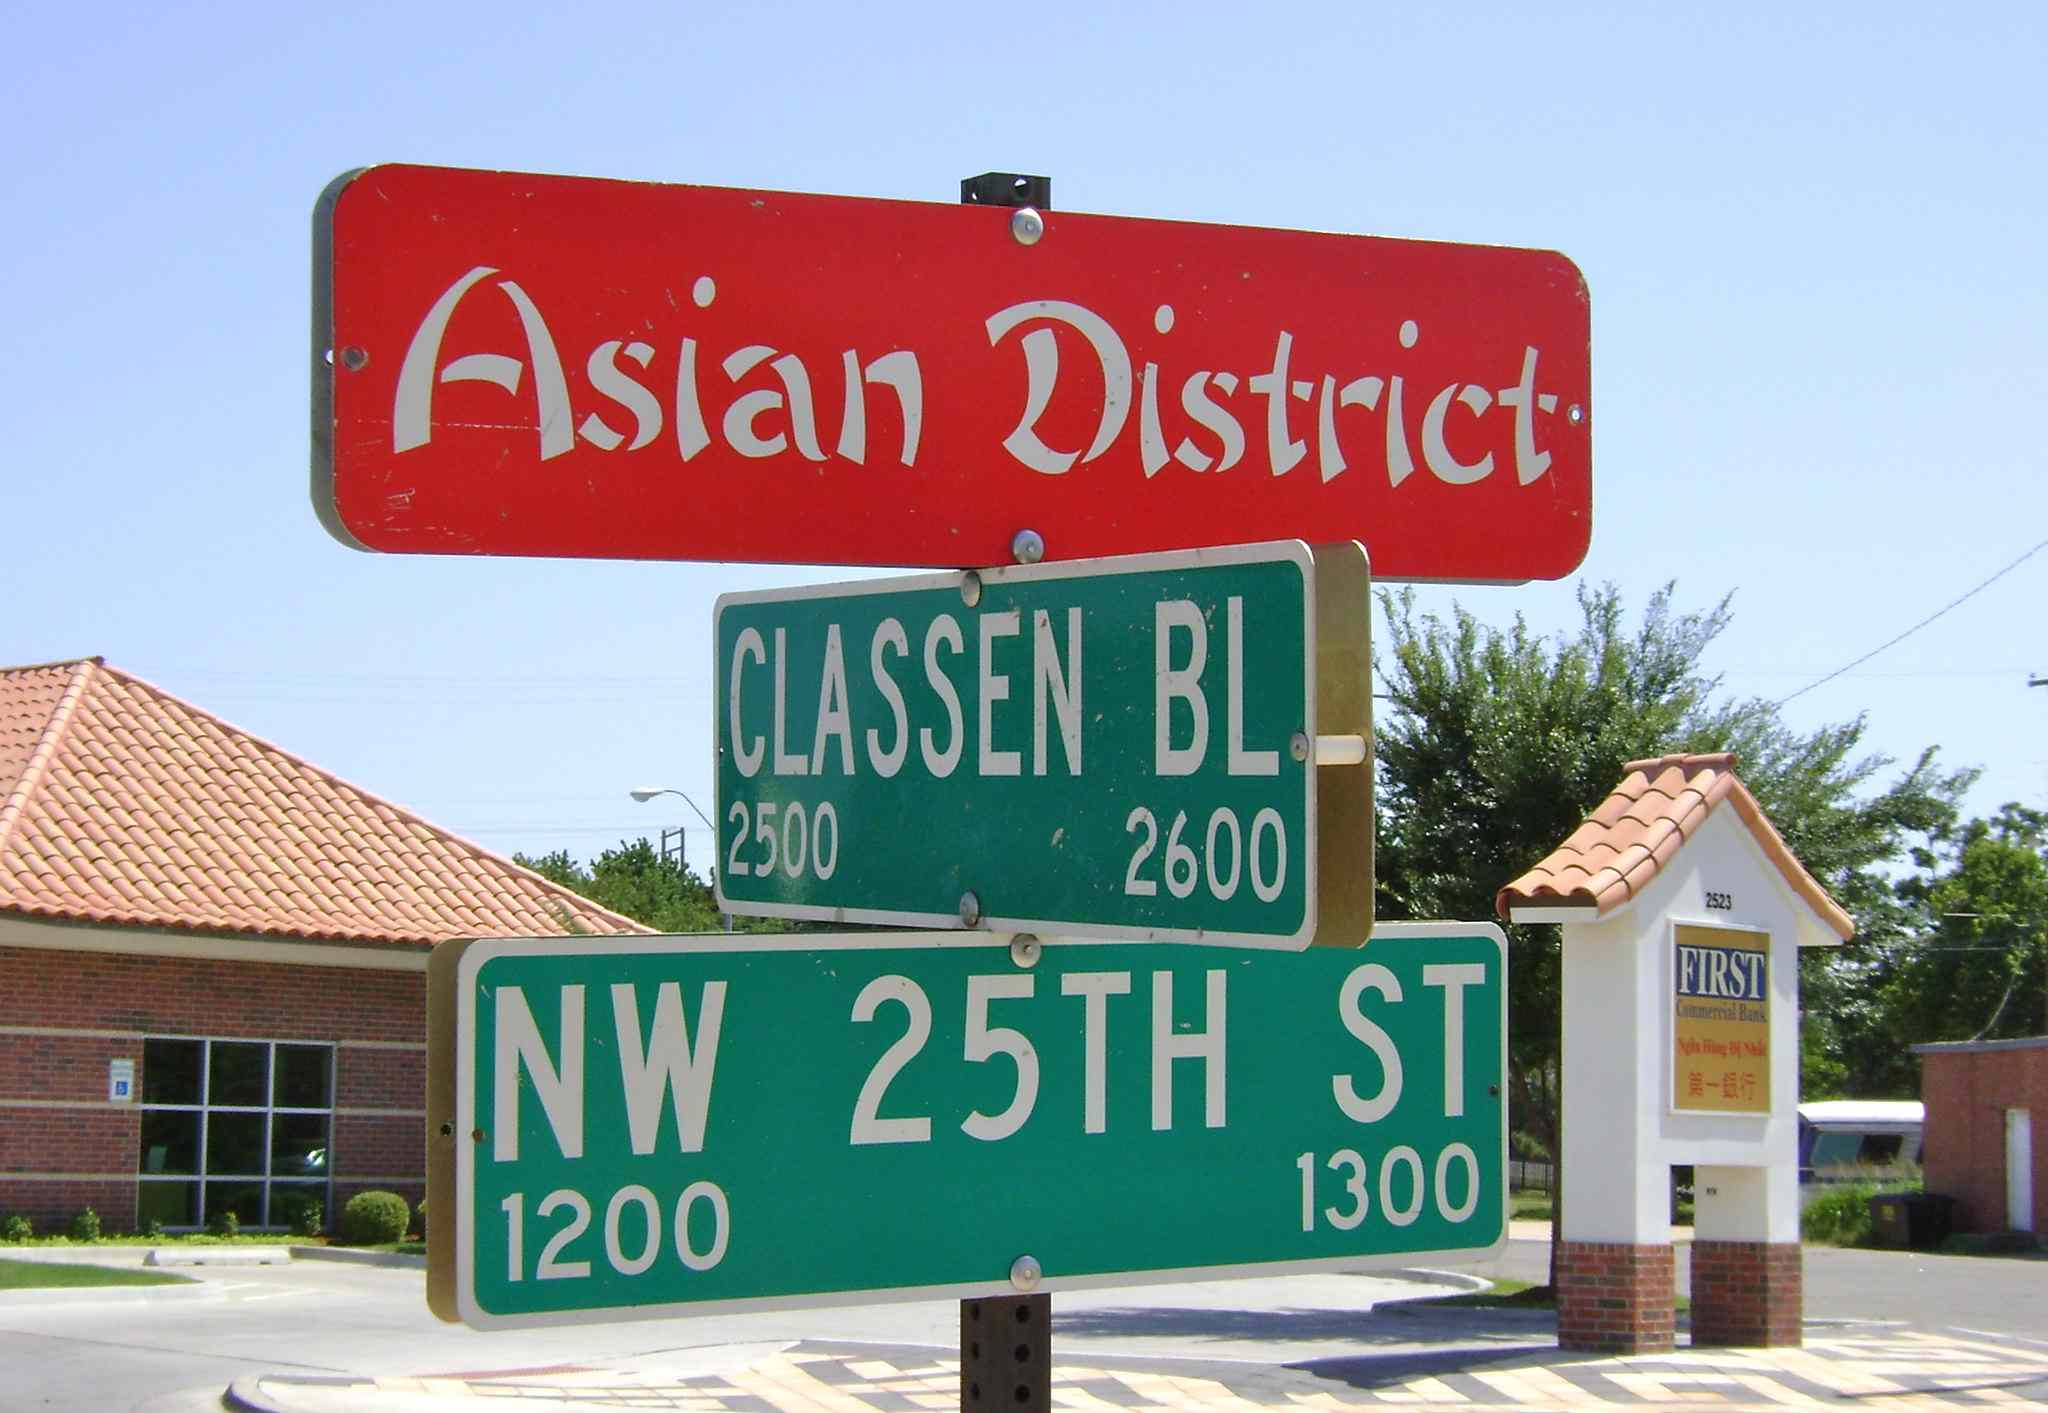 Asian District street sign